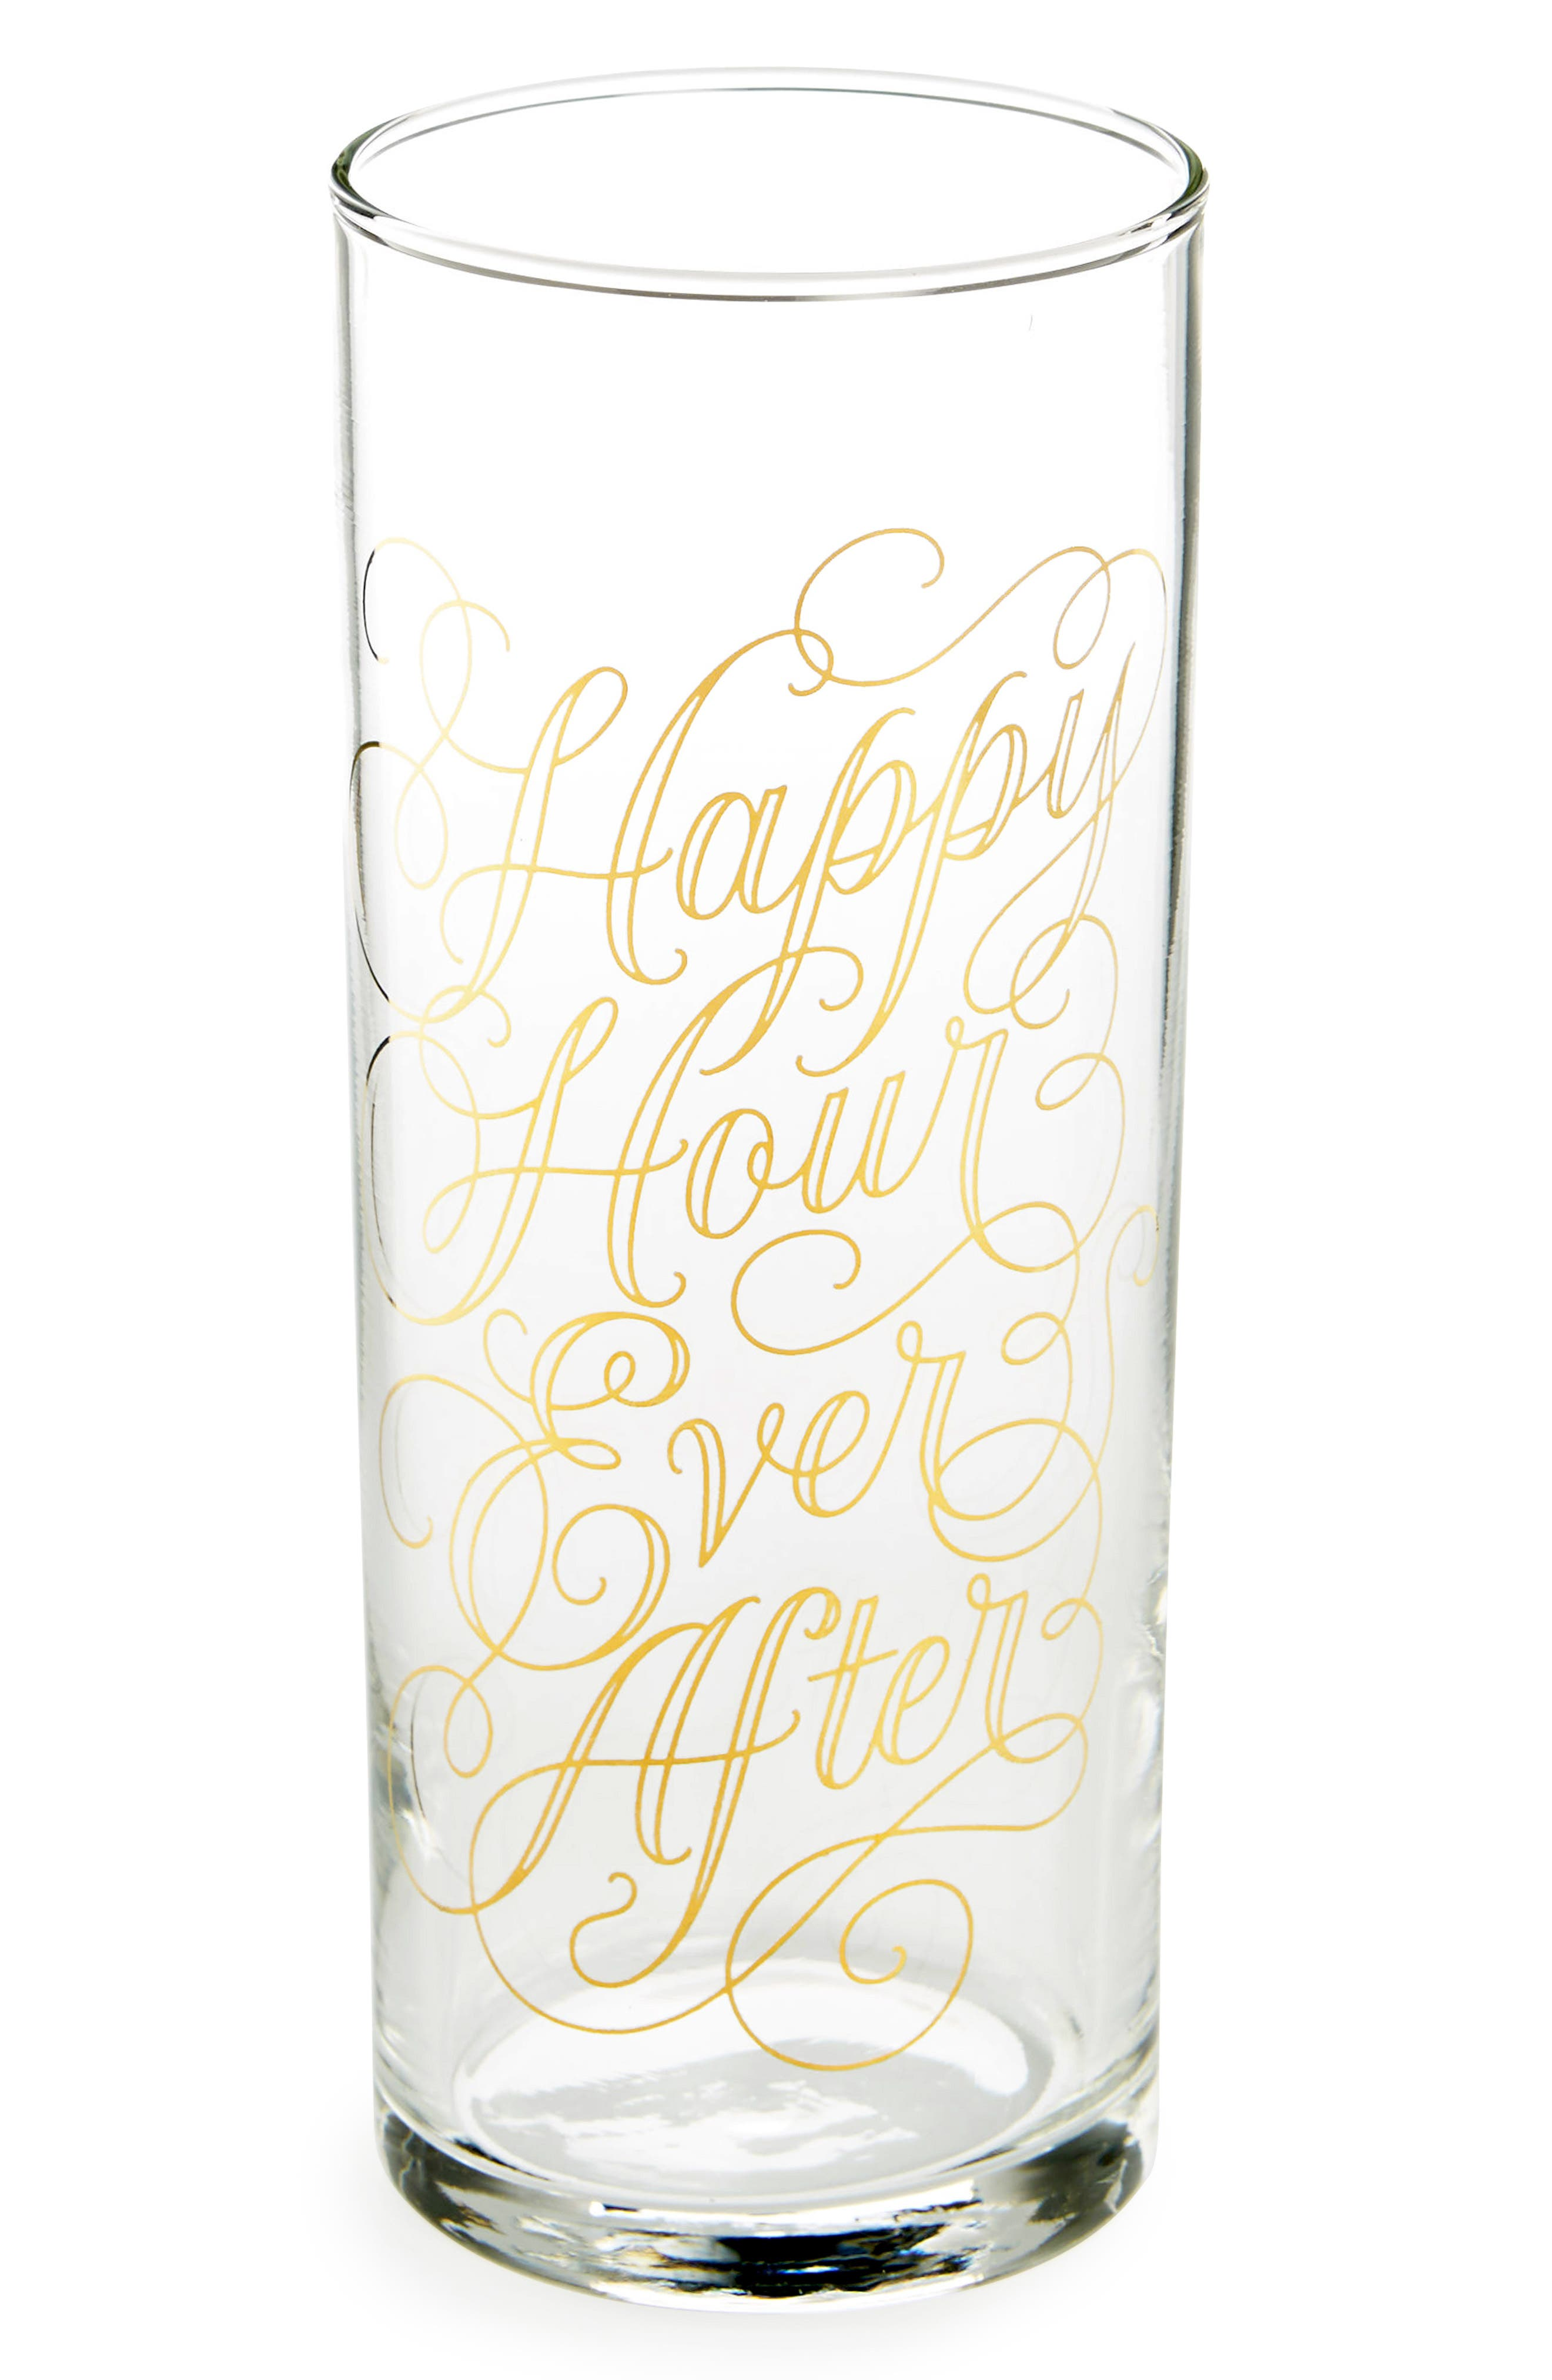 Easy, Tiger Happy Hour Ever After Highball Glass